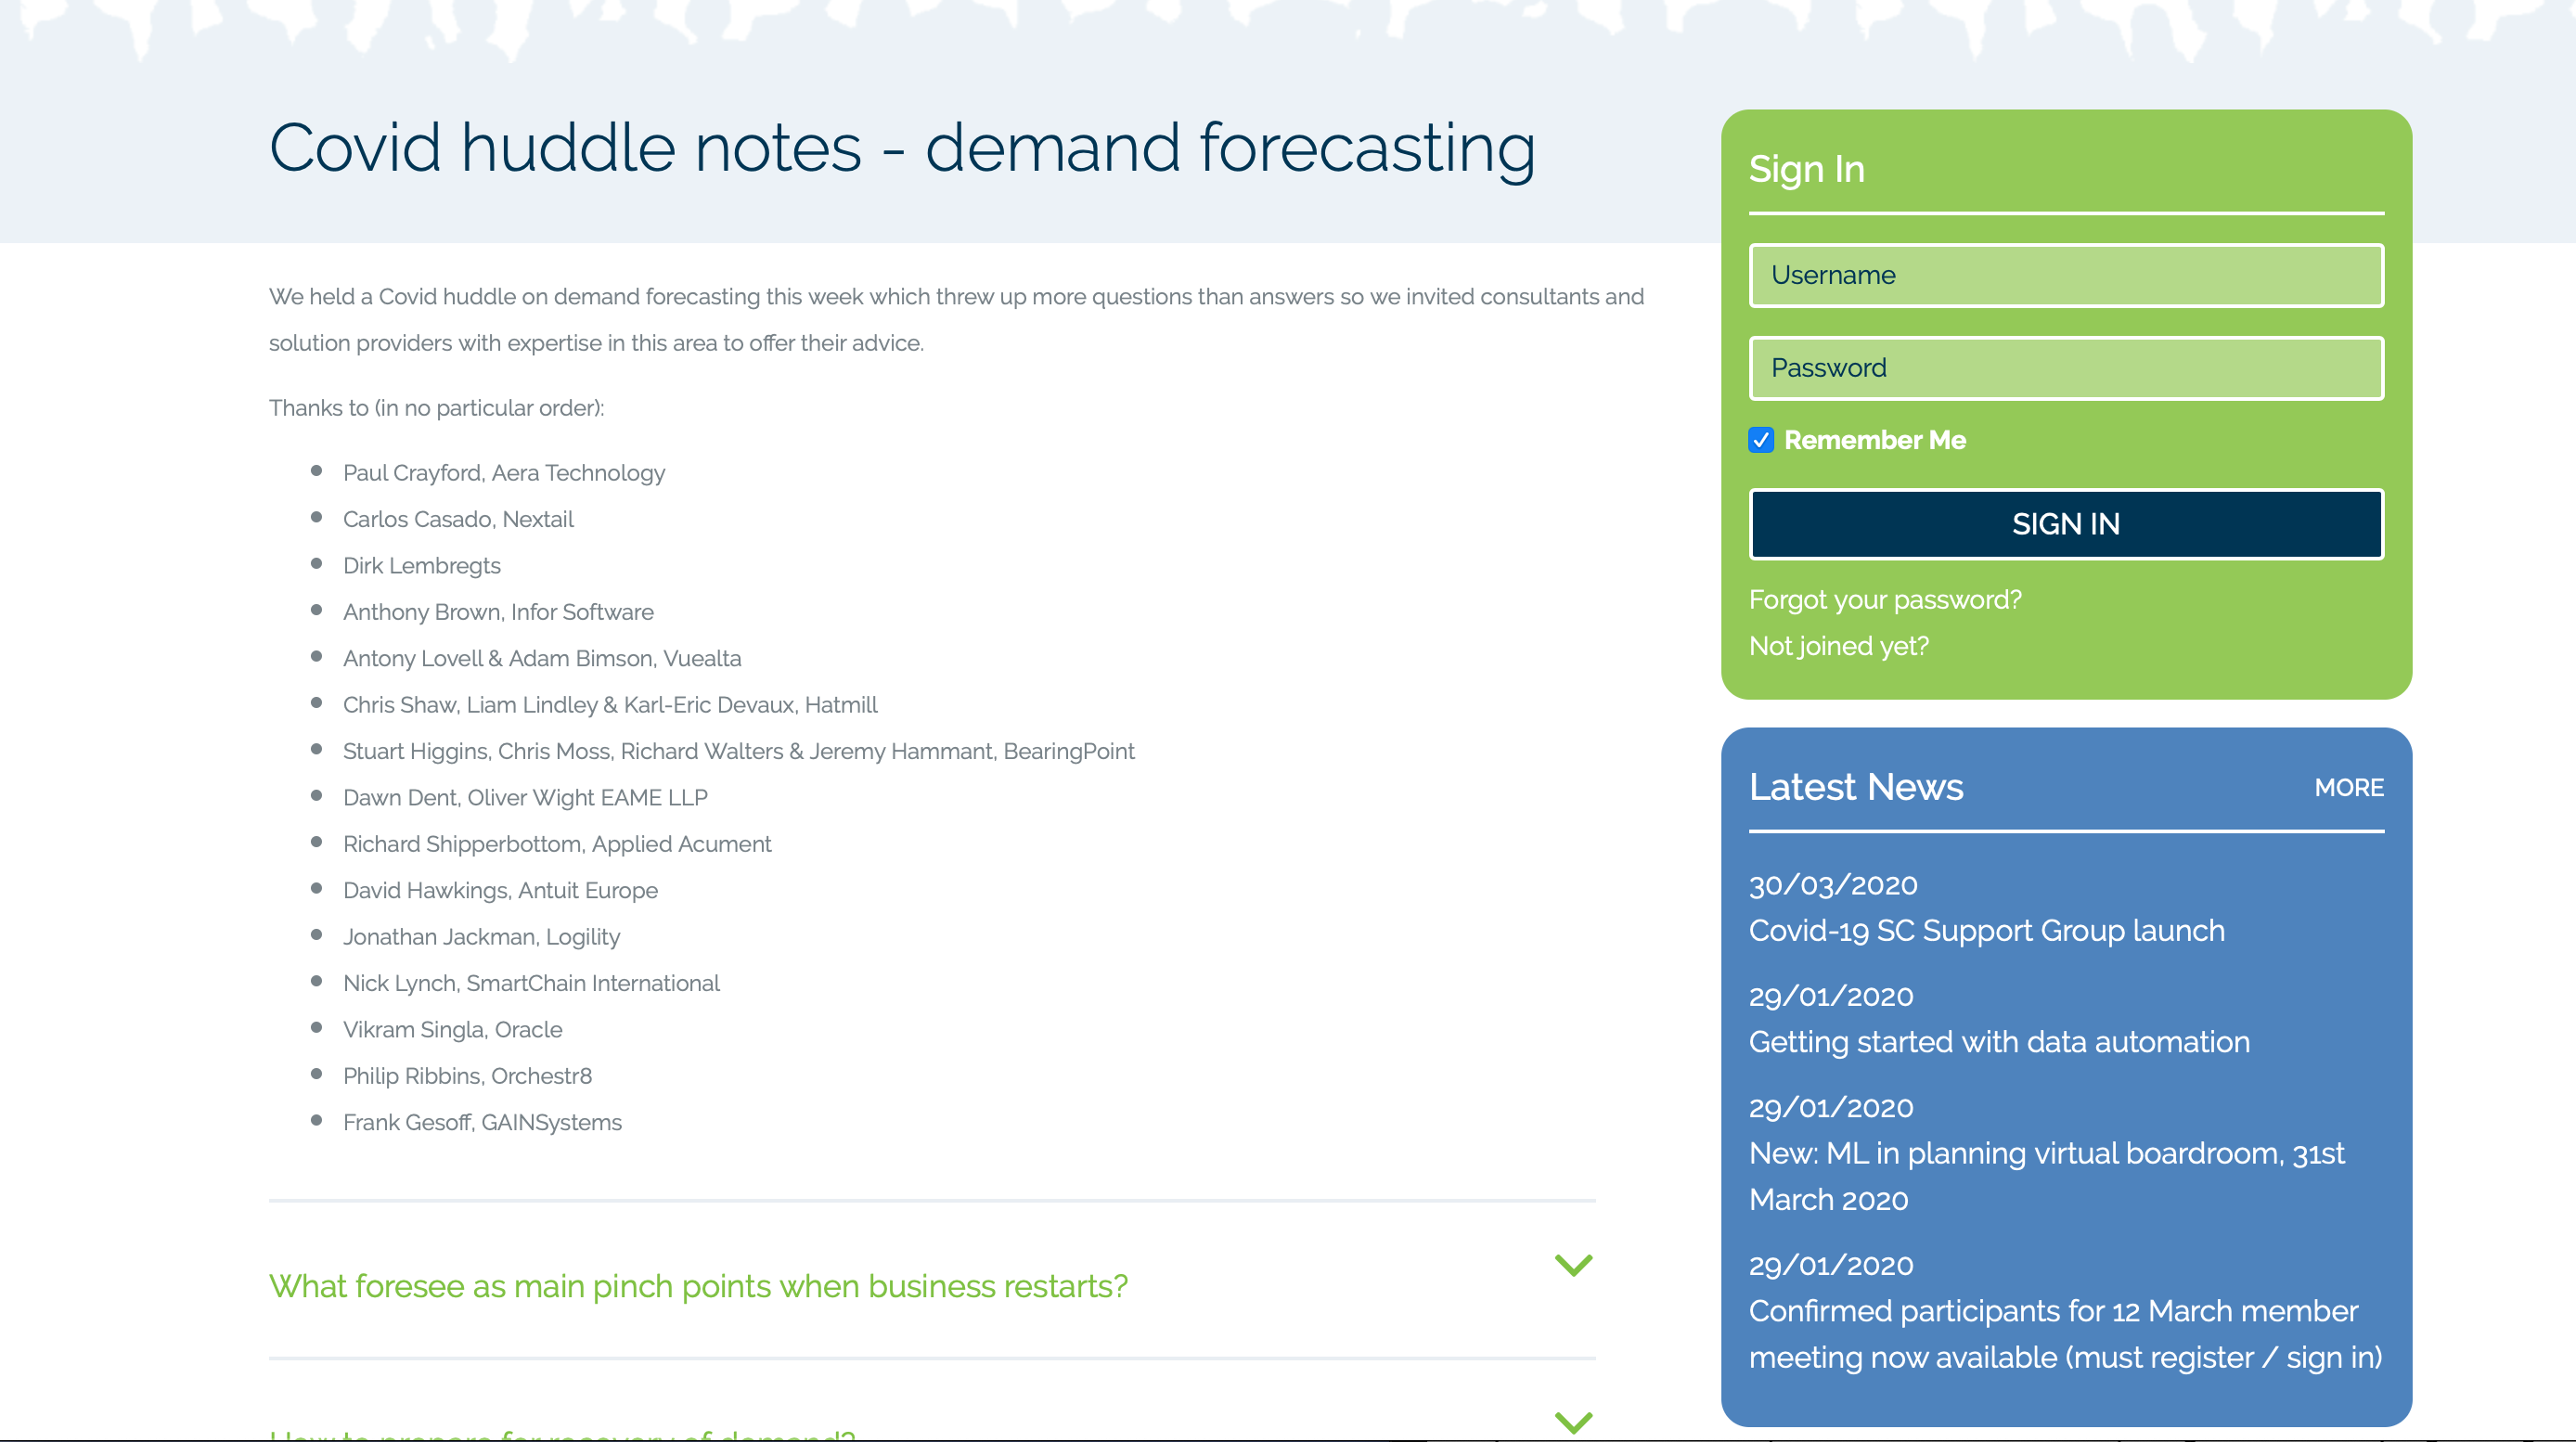 COVID-19 Huddle Notes - Demand Forecasting